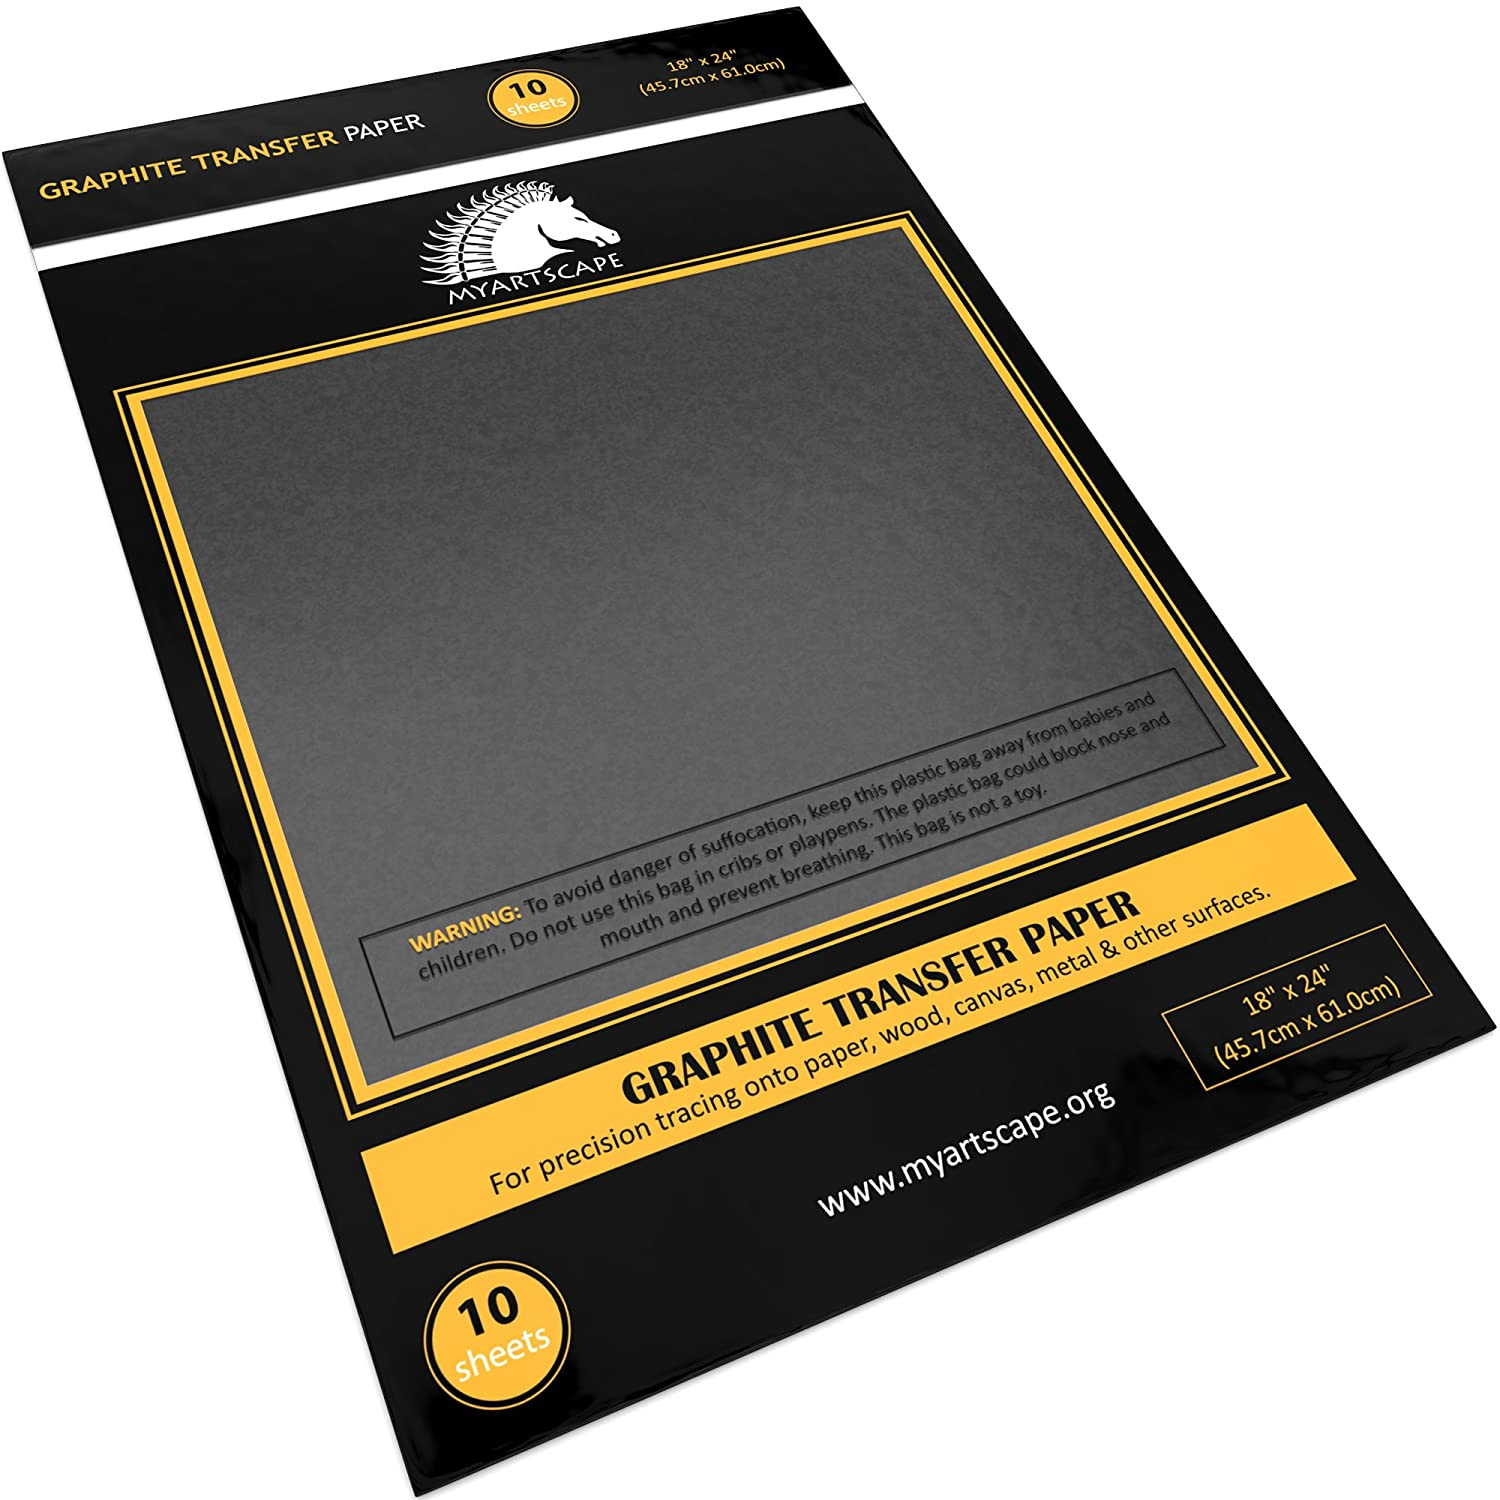 Graphite Transfer Paper - 18' x 24' - 10 Sheets - Waxed Carbon Paper for Tracing - MyArtscape (Black) MAS-300-GRAPHITE-PAPER-18x24-10-SHEETS